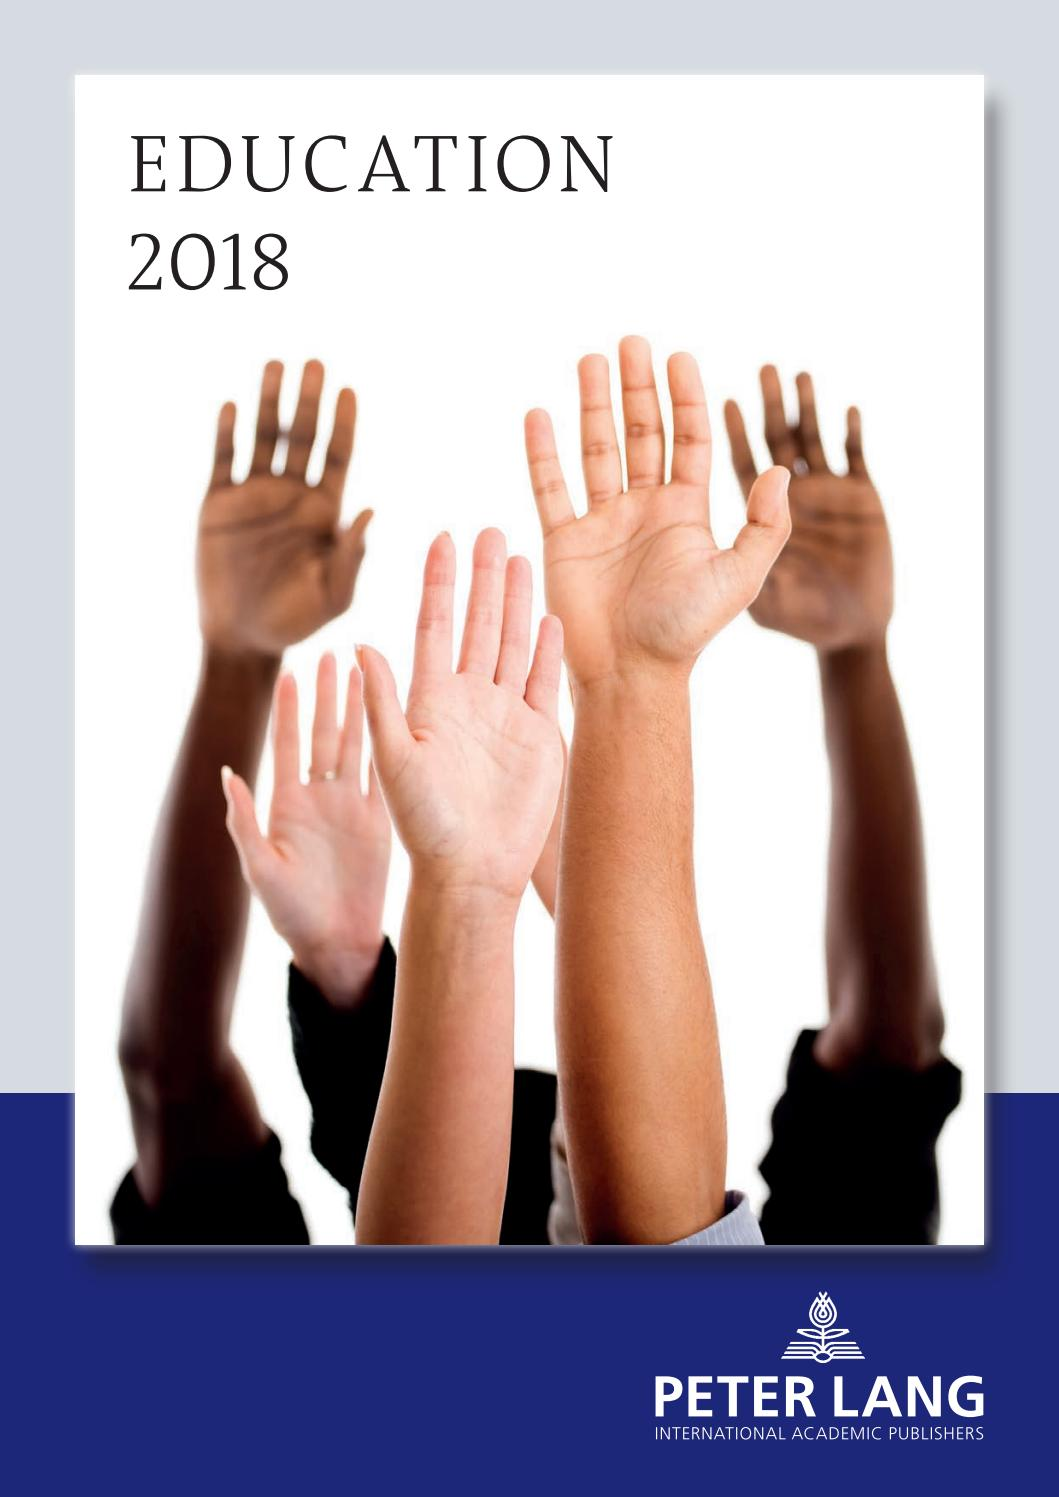 Education 2018 by Peter Lang Publishing Group - issuu